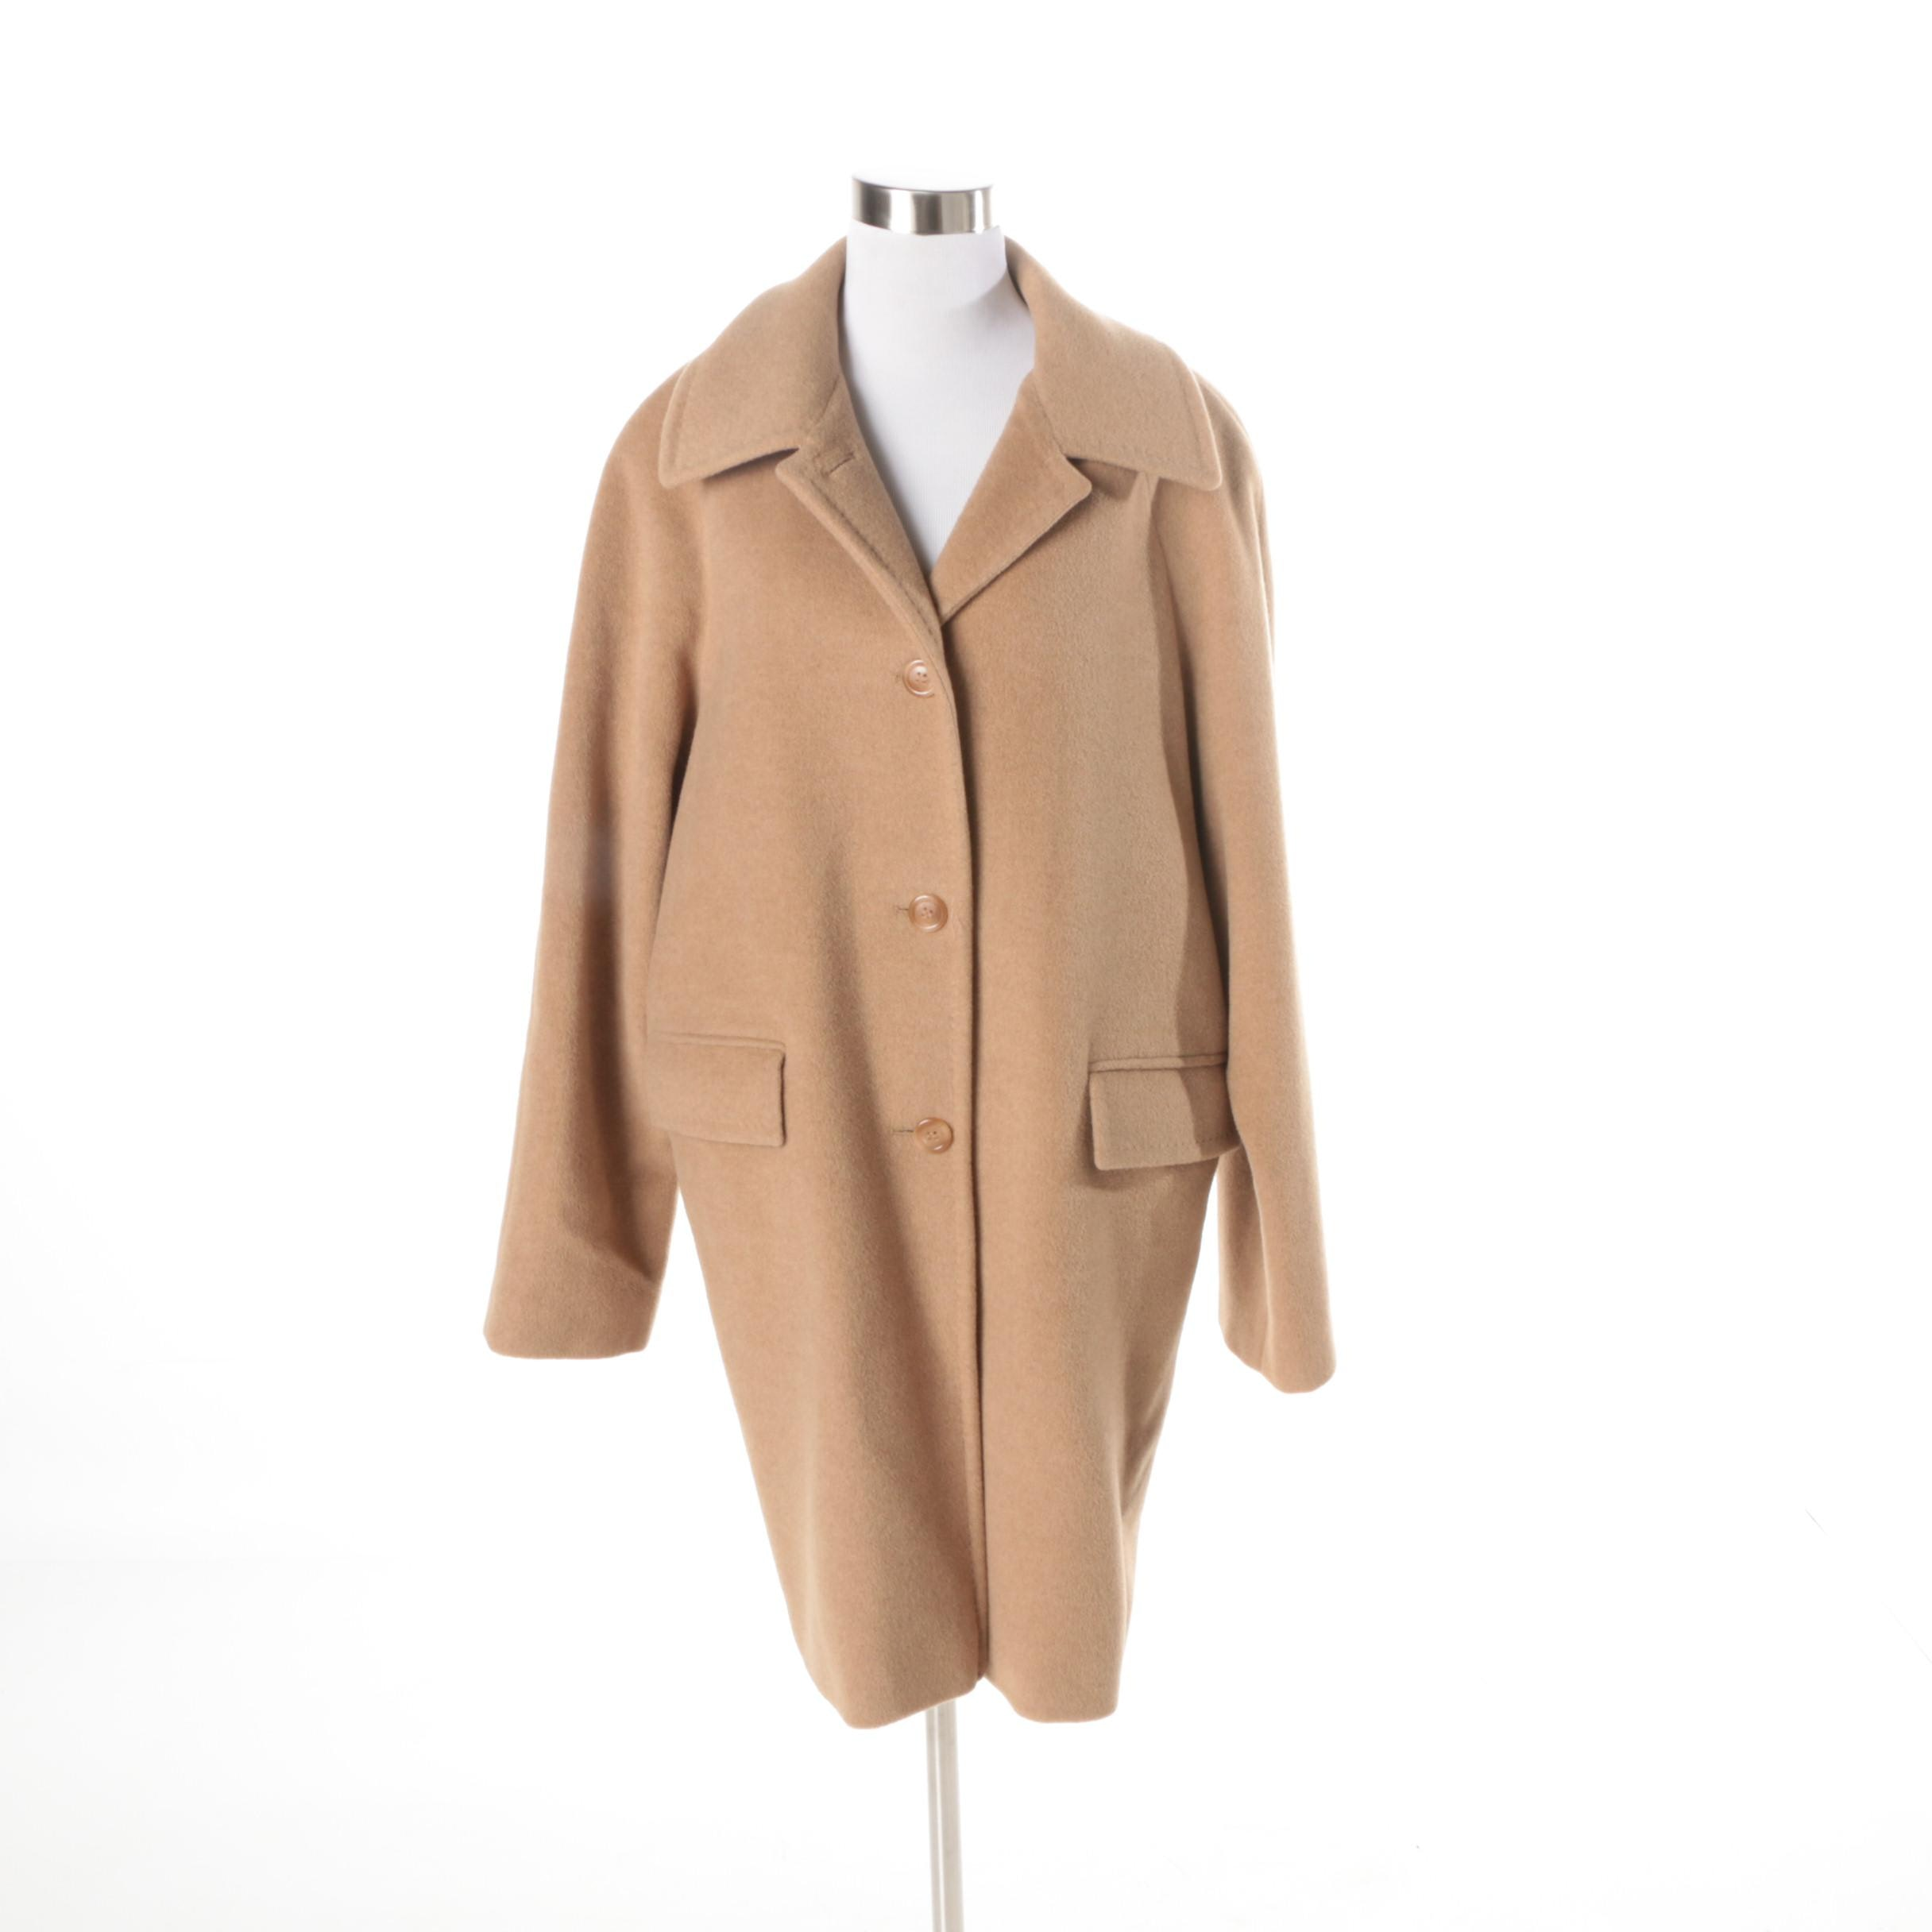 Women's Larry Levine Camel Hair Coat